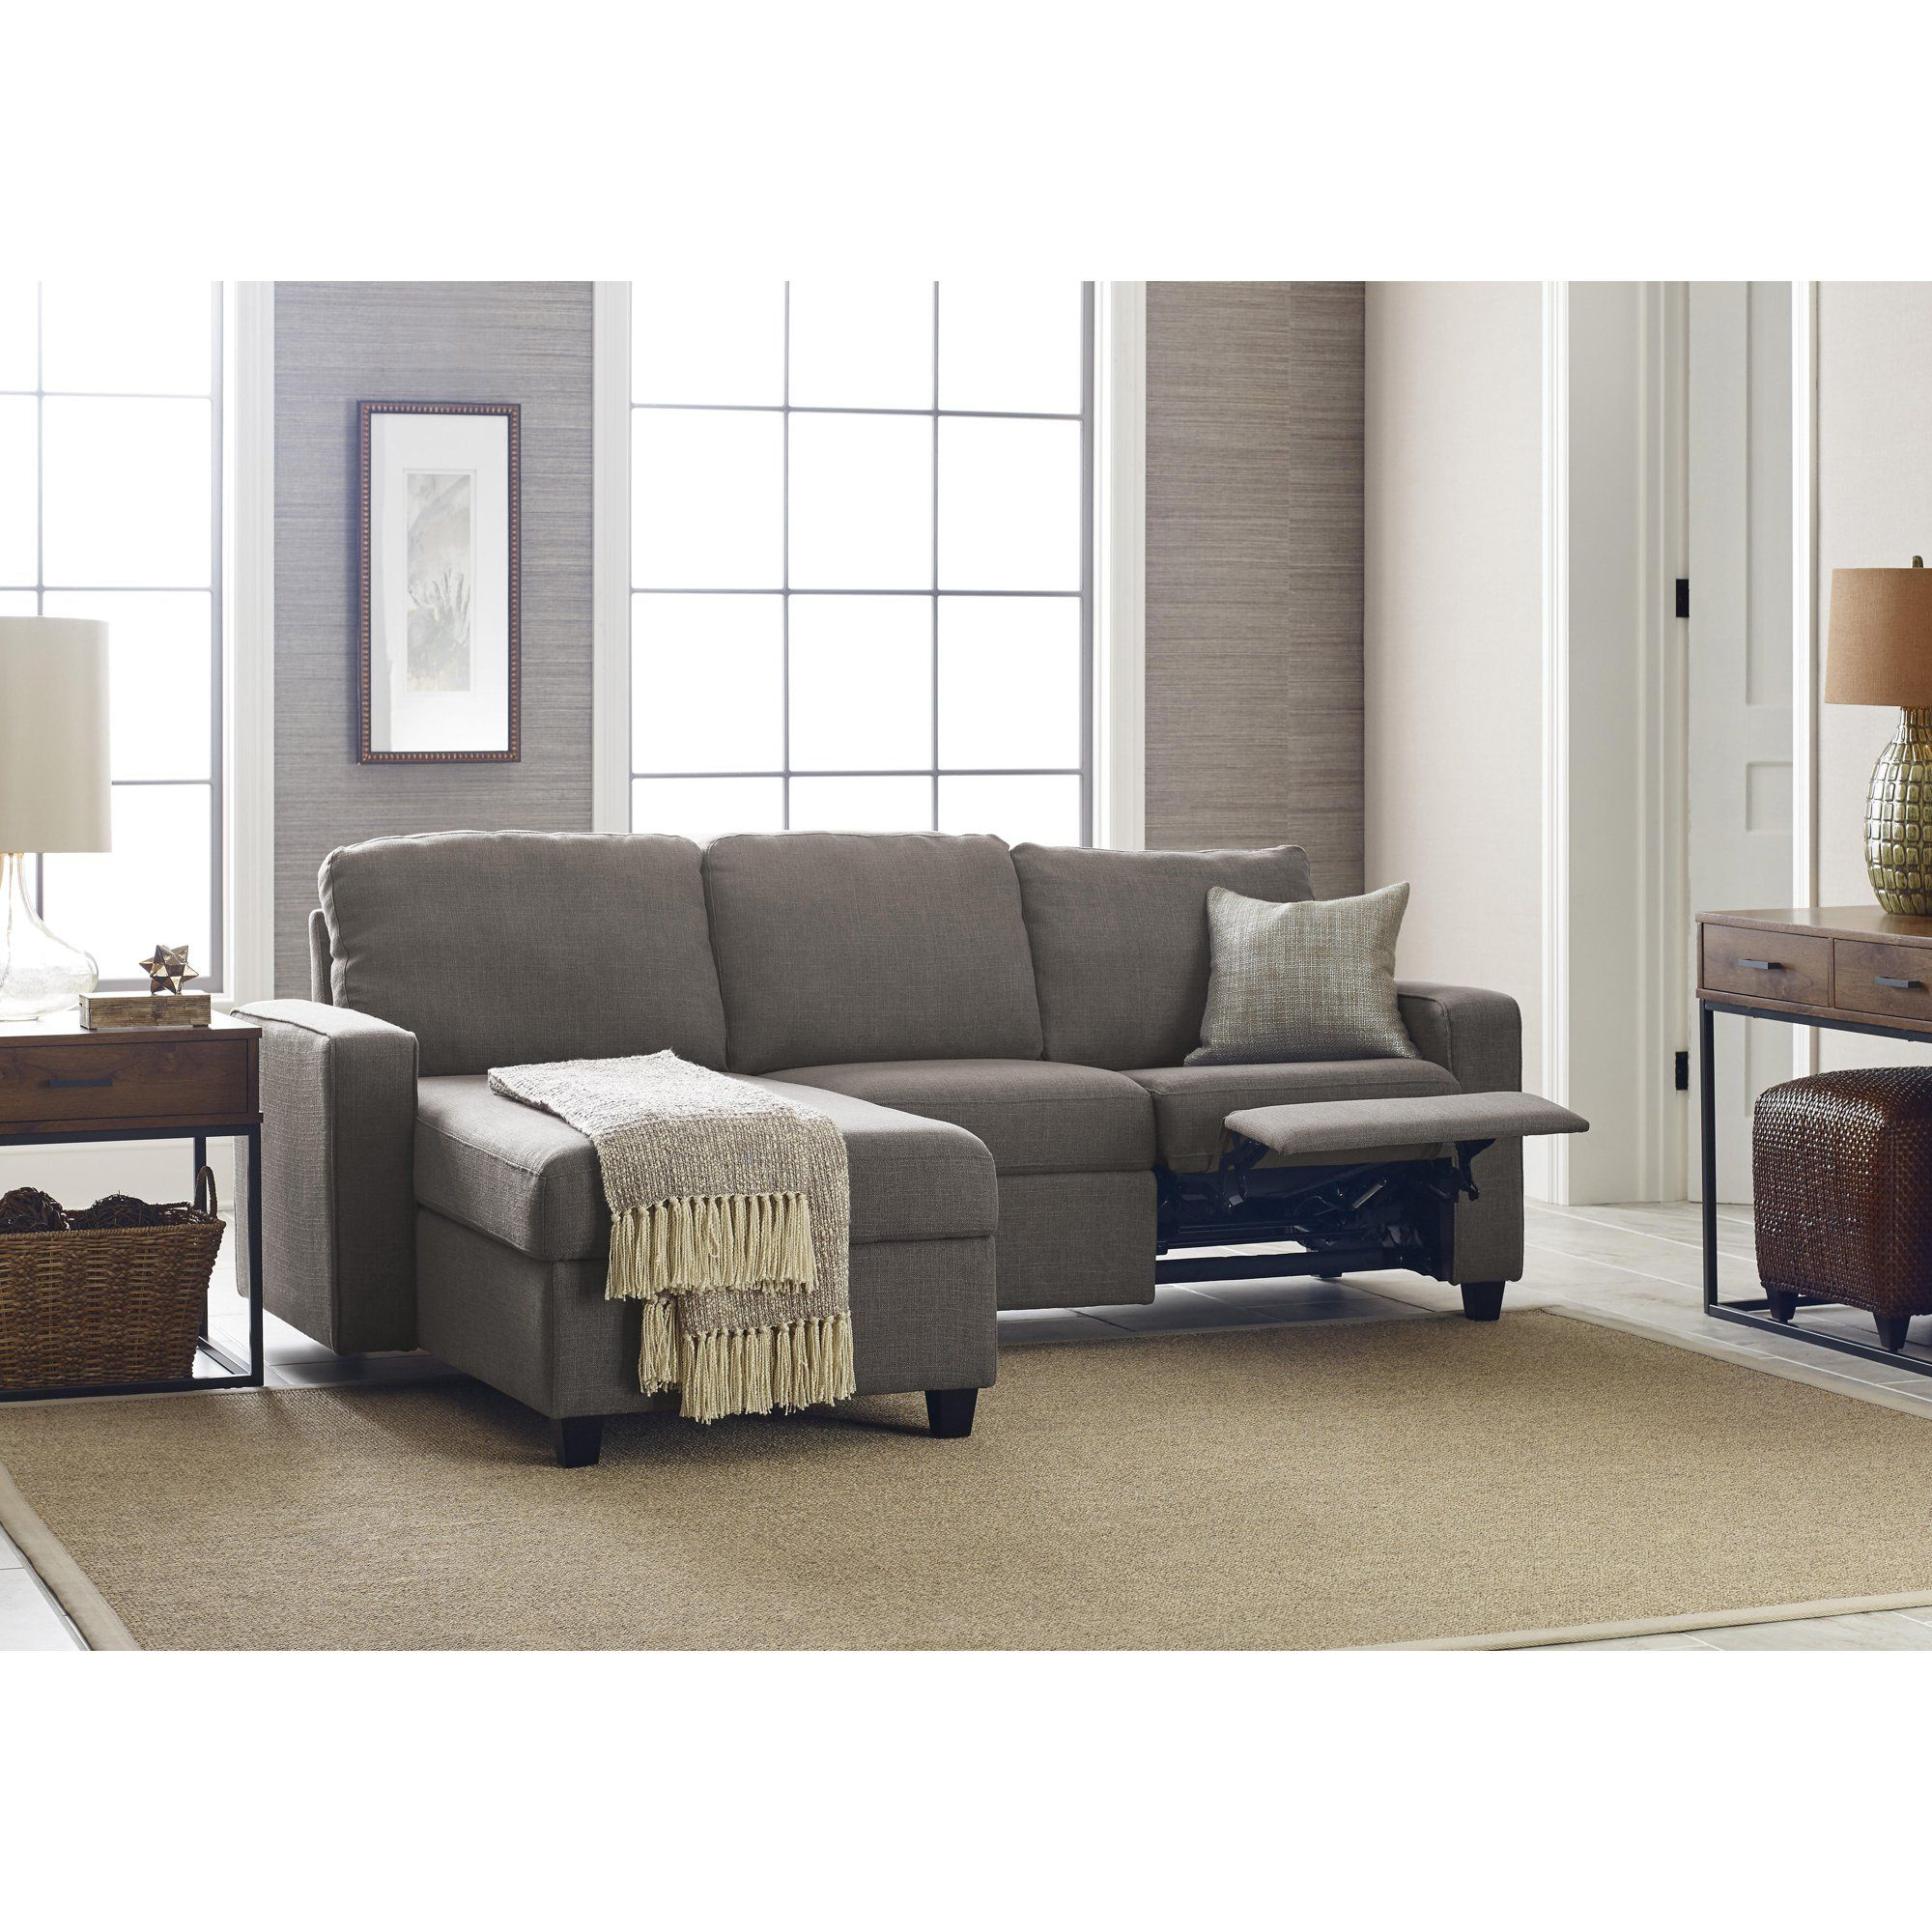 Recent Copenhagen Reclining Sectional Sofas With Right Storage Chaise Intended For Serta Palisades Reclining Sectional With Right Storage (View 4 of 20)